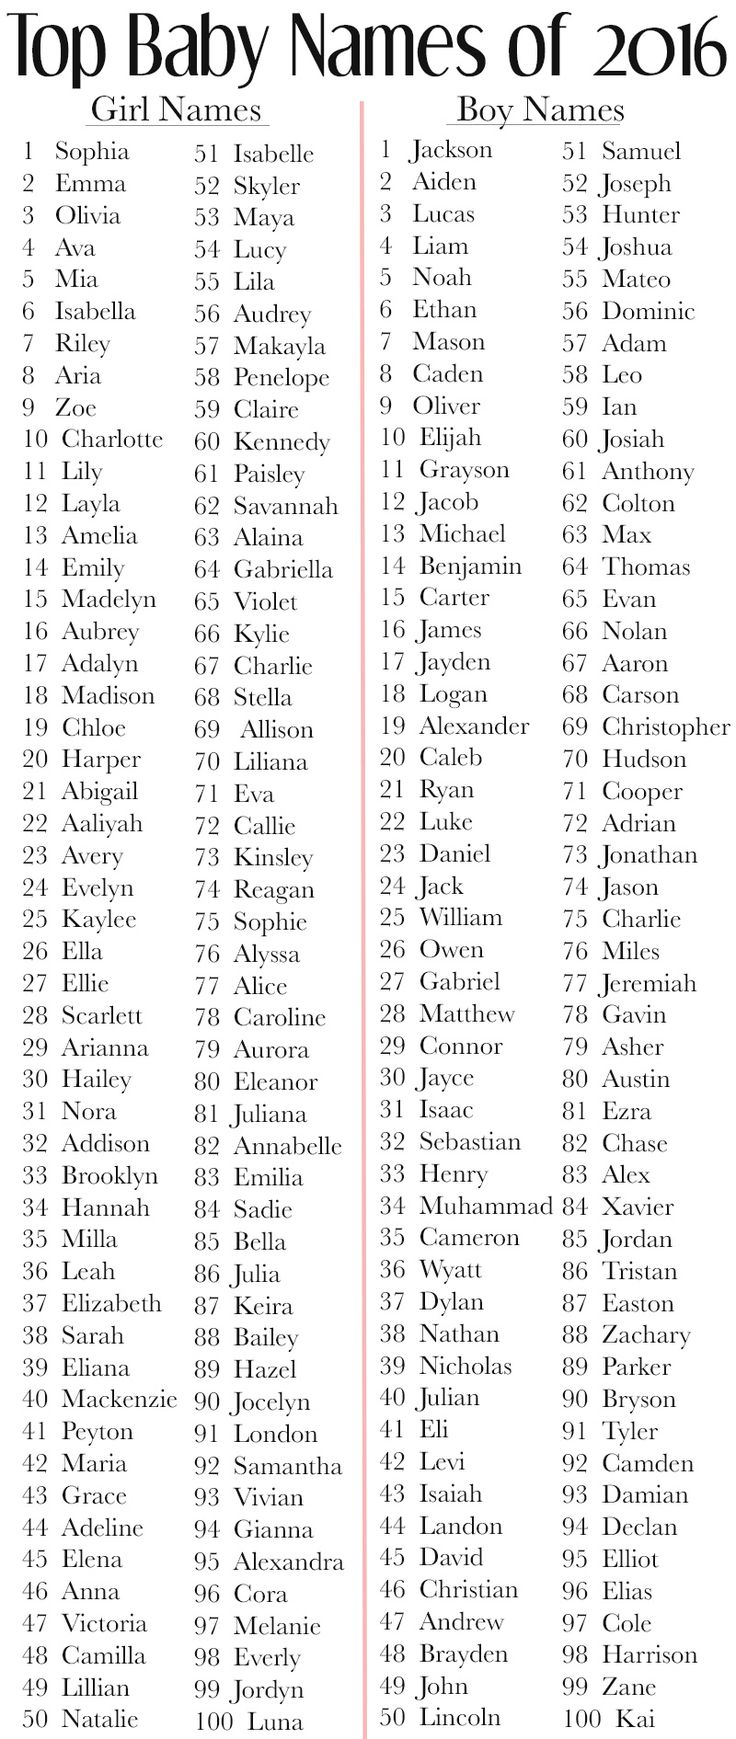 From this list I like from the boy's side Clark Andrew/Aaron (Asher Clark?), and from the girl's side something like the name Lily Eden. Just a thought.